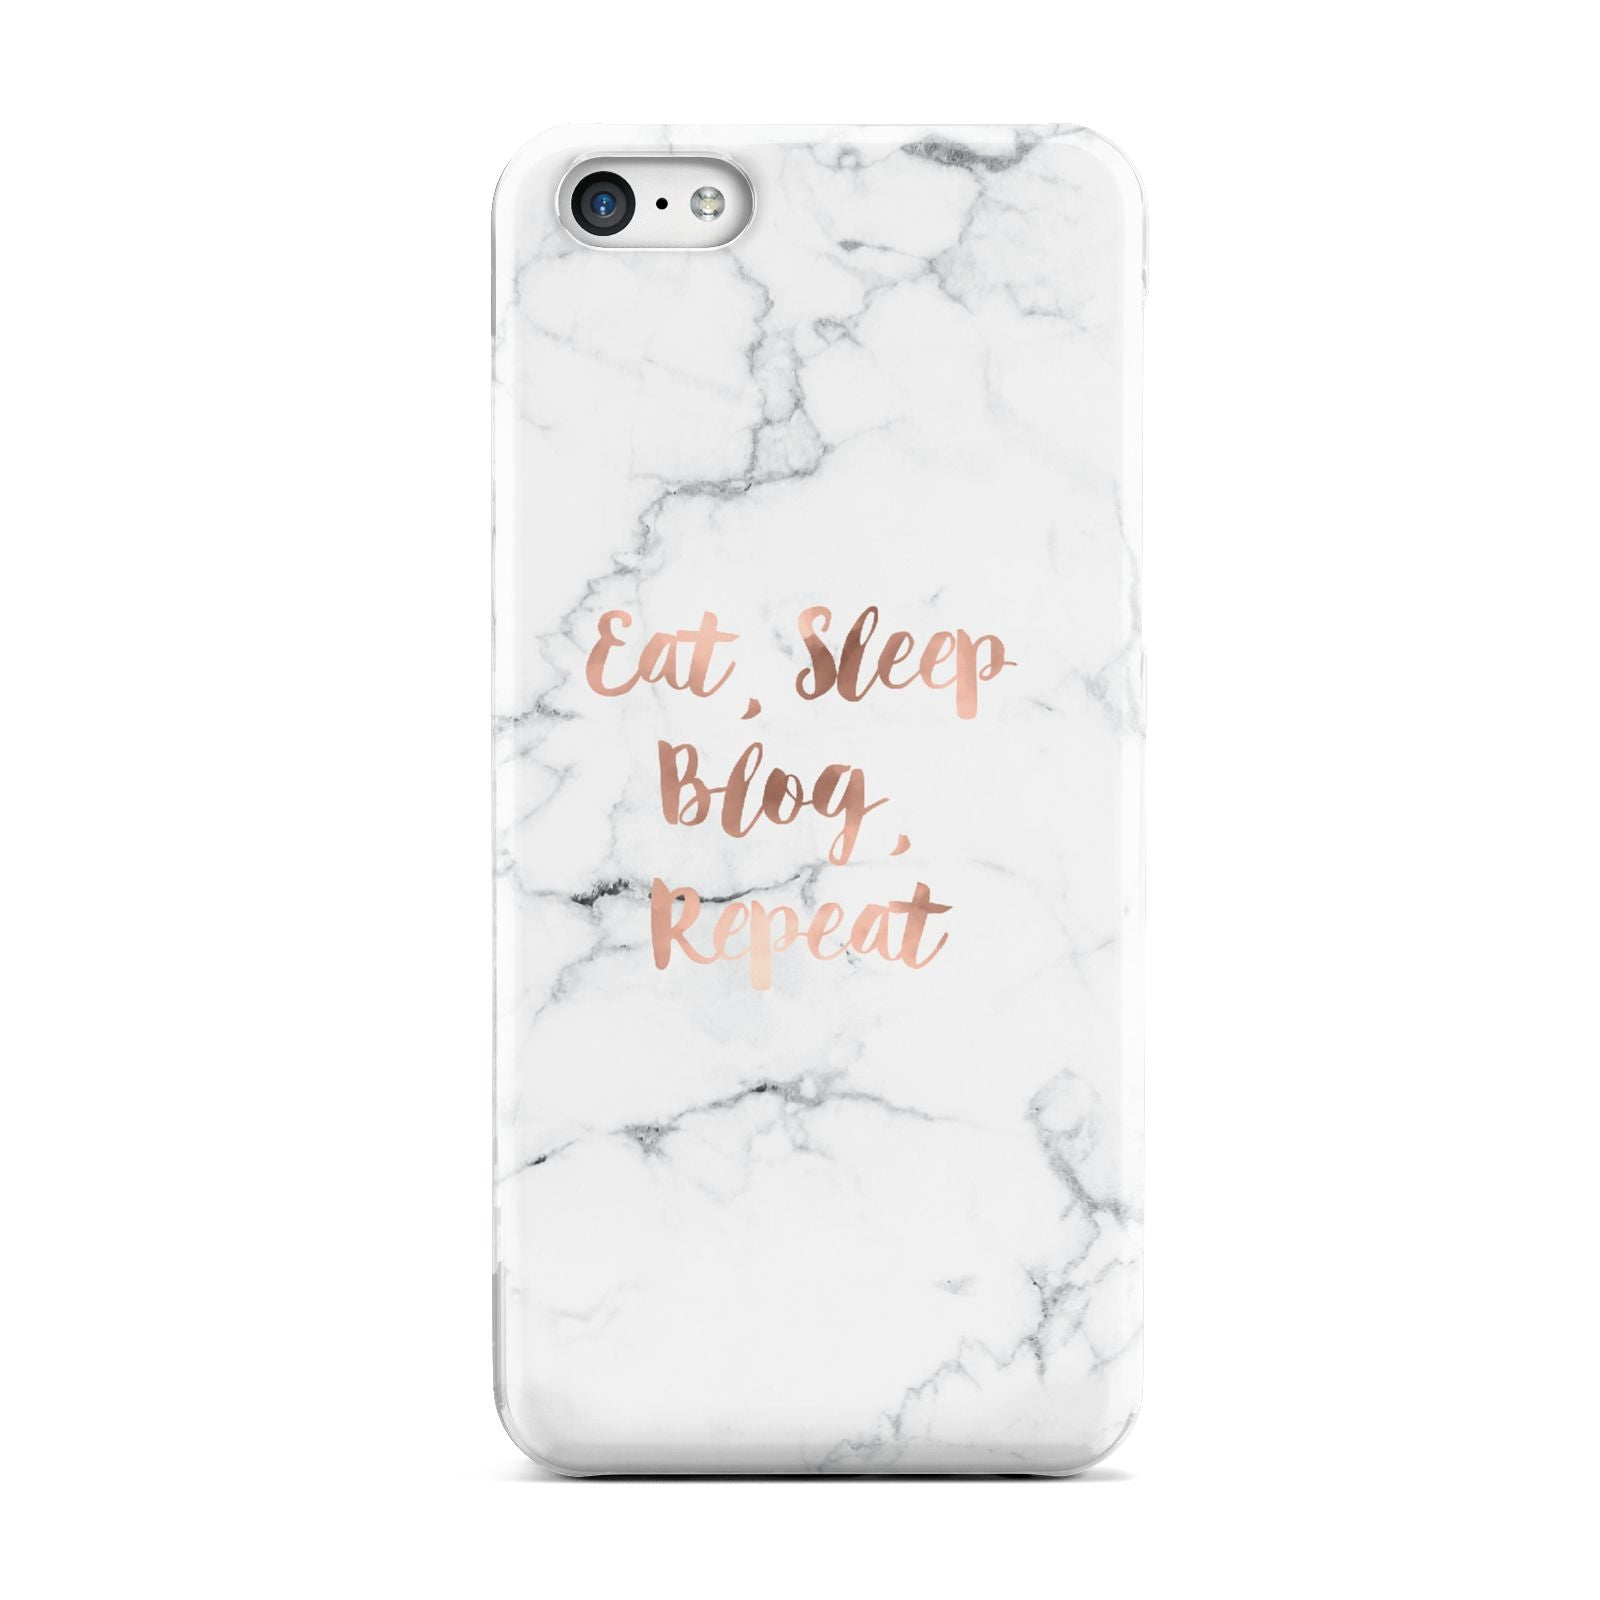 Eat Sleep Blog Repeat Marble Effect Apple iPhone 5c Case